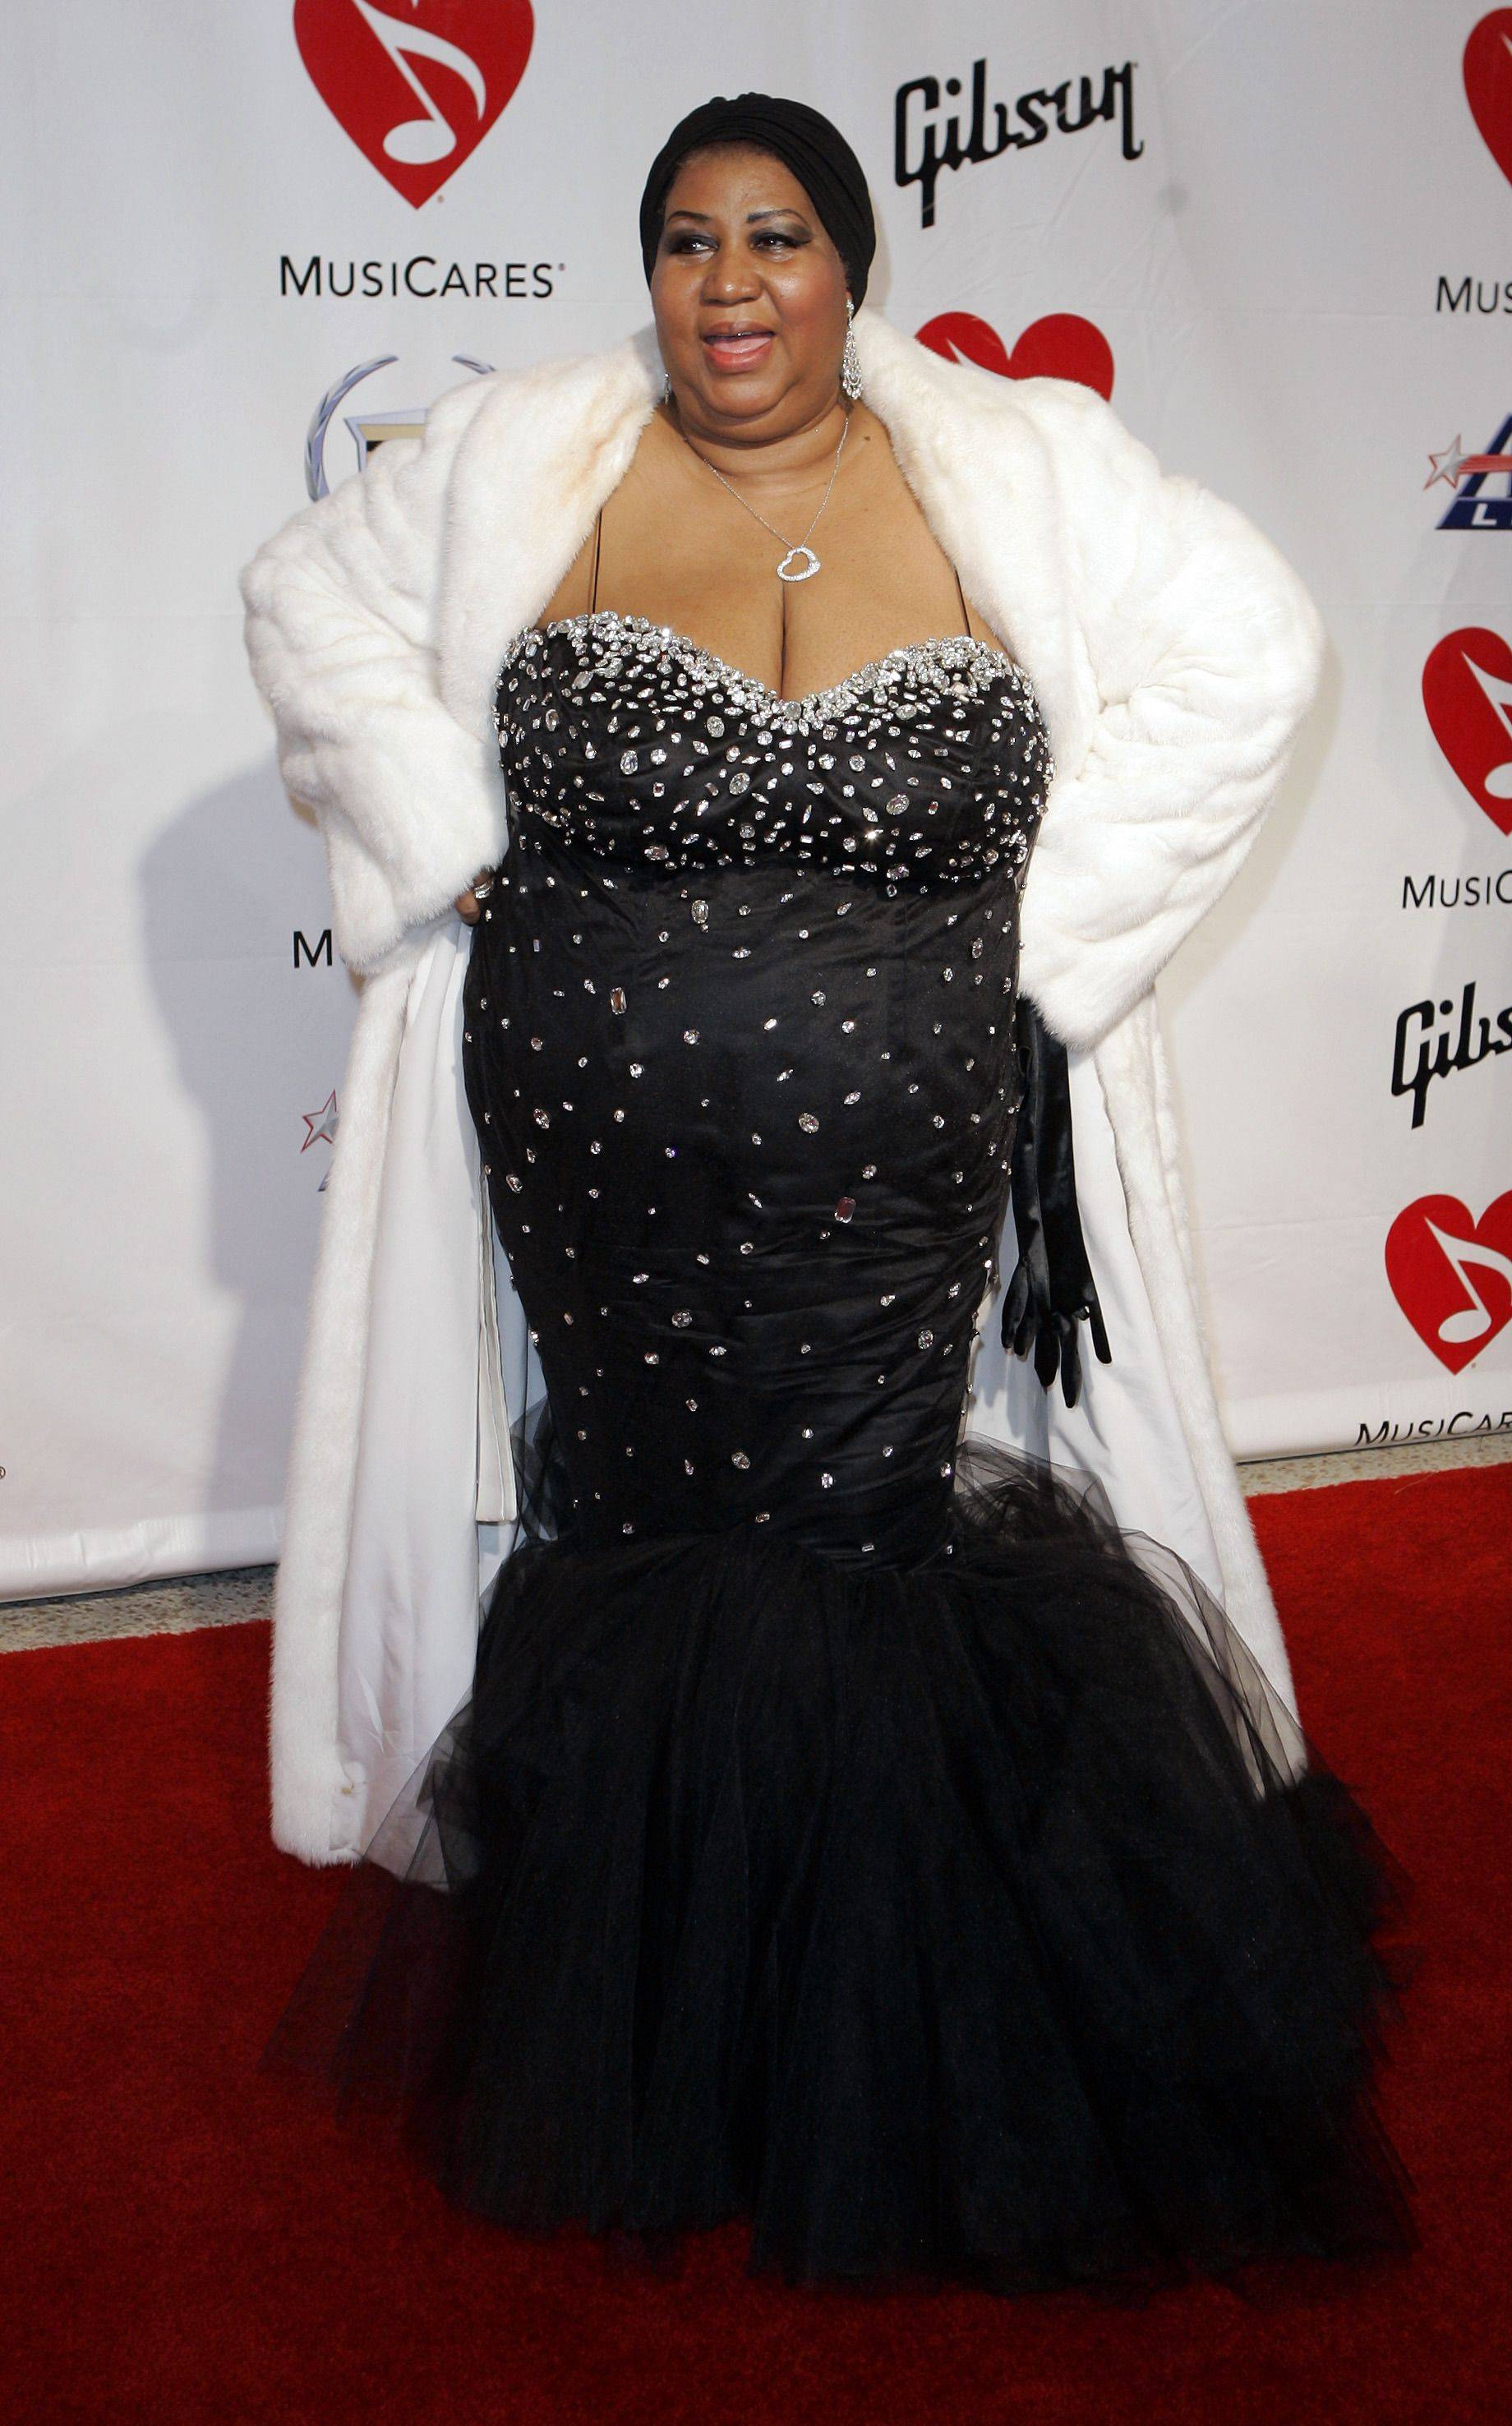 Aretha Franklin poses as she arrives at the MusiCares tribute to her where she was honored as their person of the year, Friday night, Feb. 8, 2008, in Los Angeles.